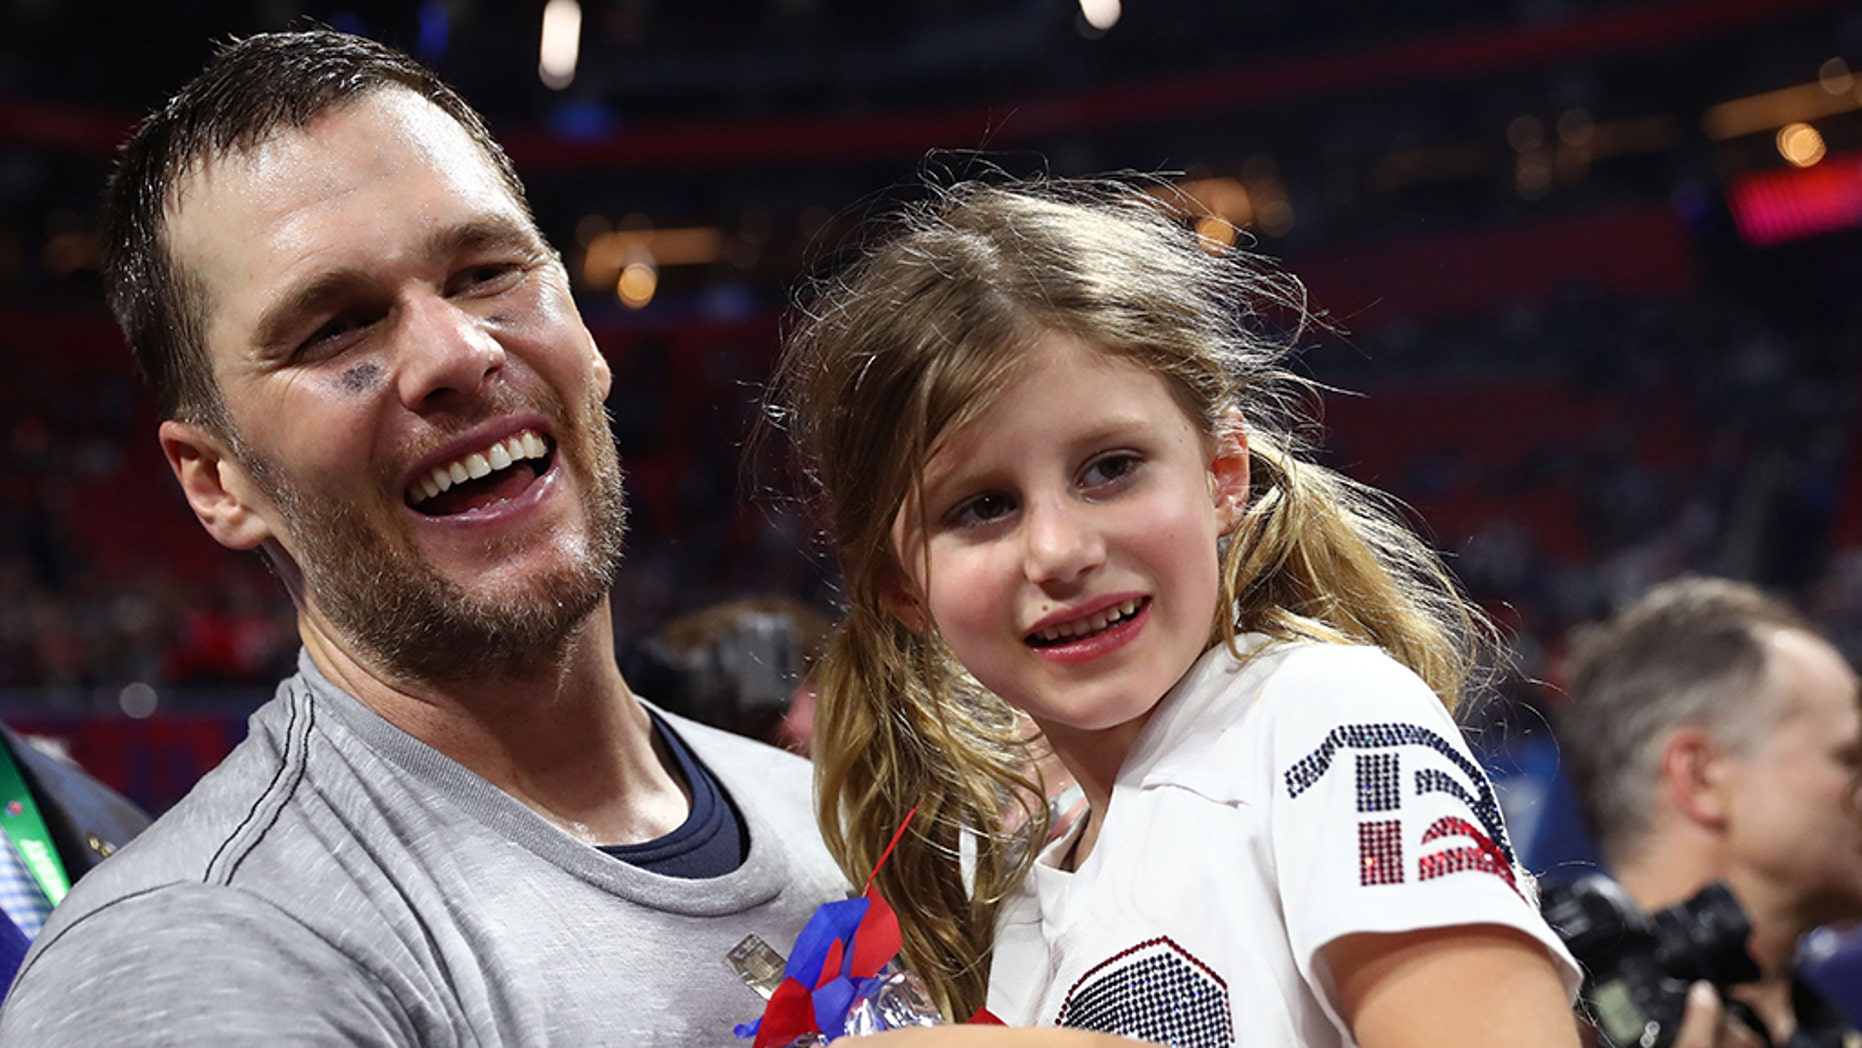 Coming off his sixth Super Bowl championship last season, Tom Brady posted a vacation video on Instagram showing him and his six-year-old daughter, Vivian, leaping off a small cliff in Costa Rica into a pool below. (Photo by Maddie Meyer/Getty Images)